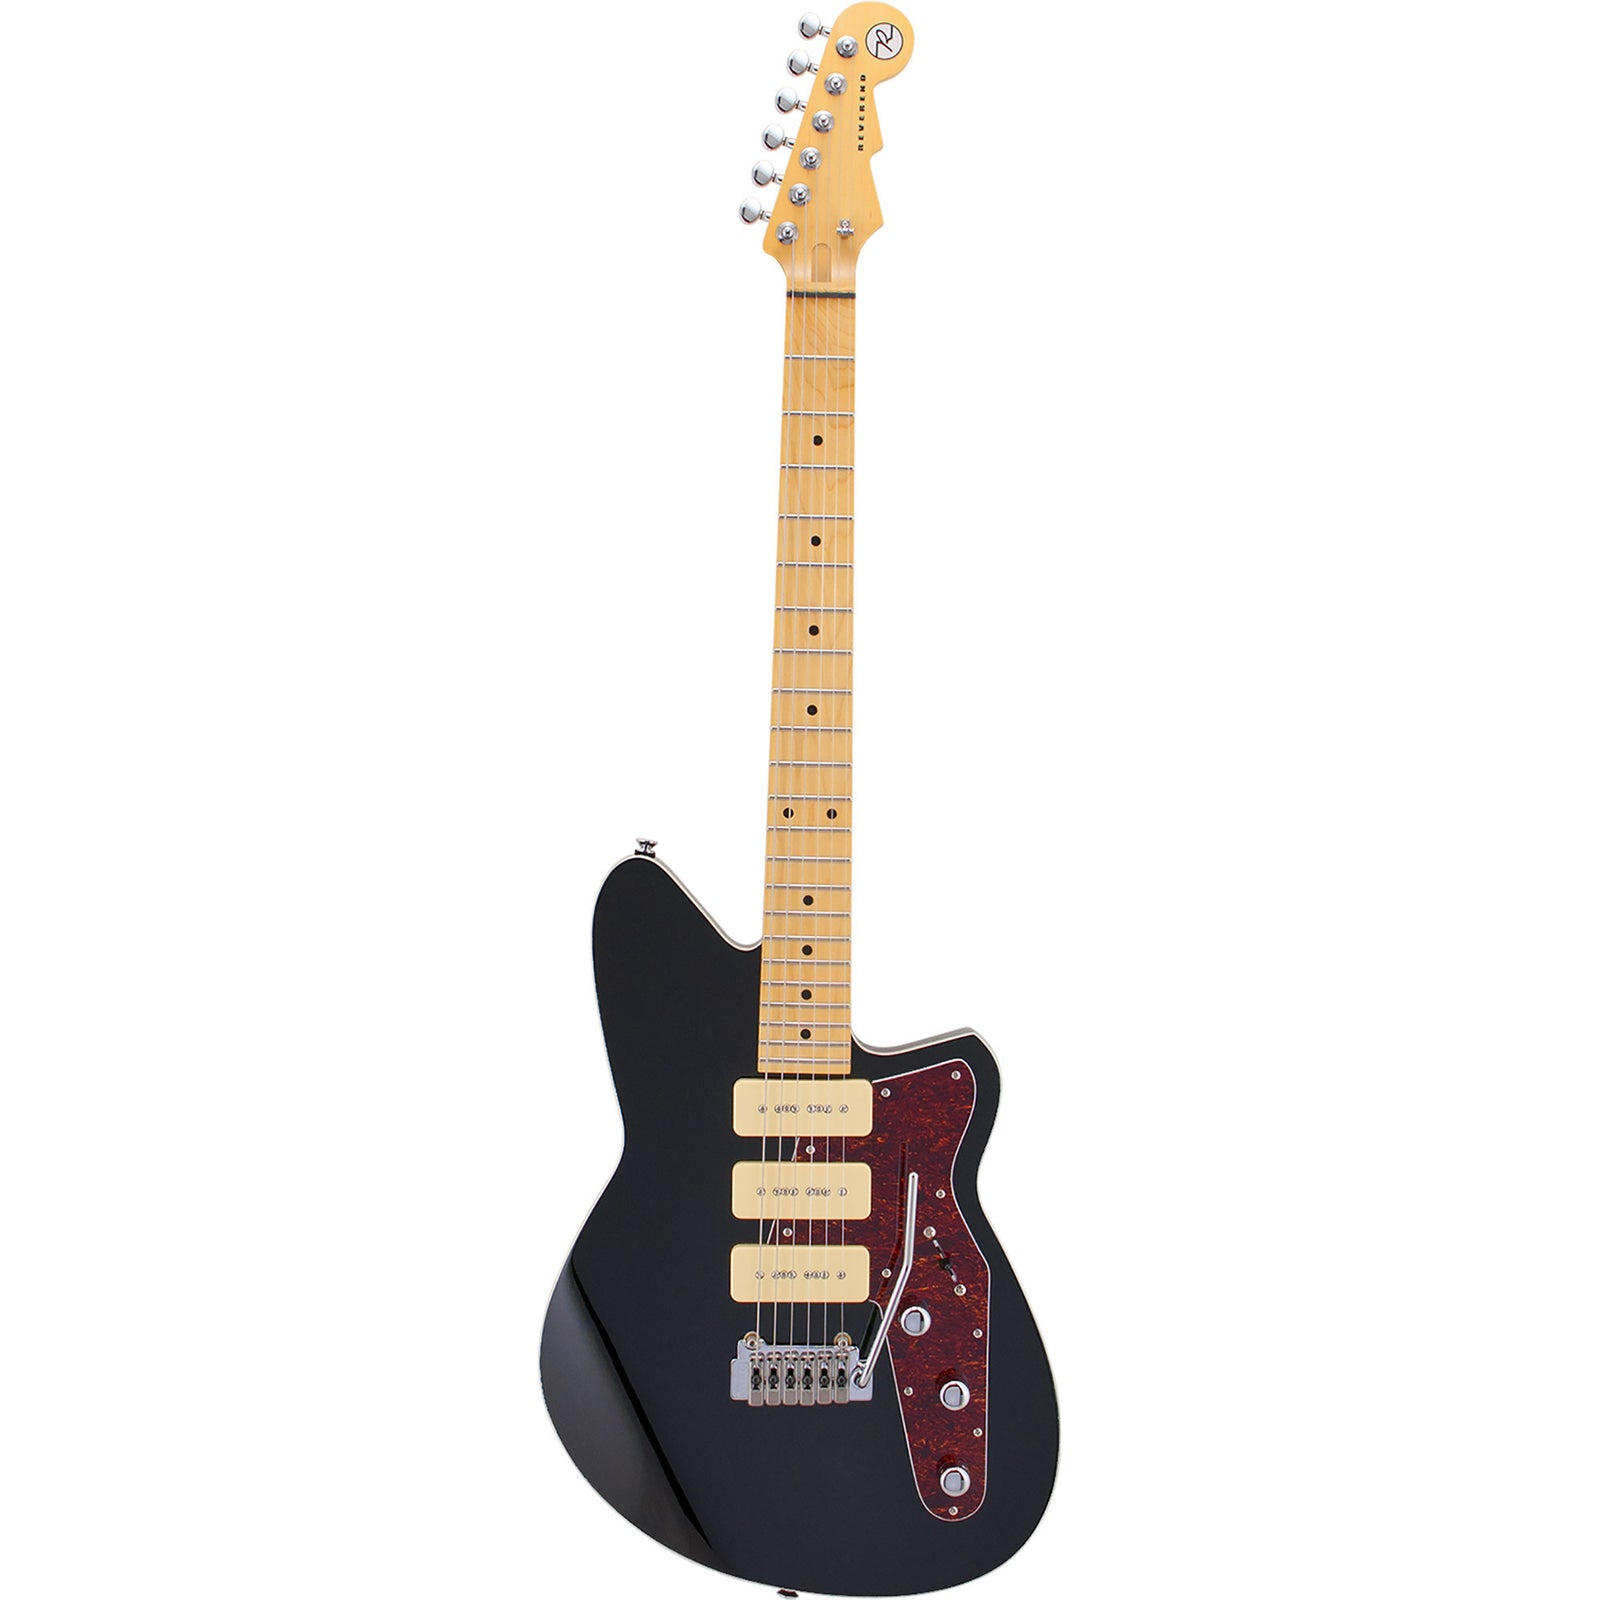 Reverend Jetstream 390 With Wilkinson Tremolo - Midnight Black